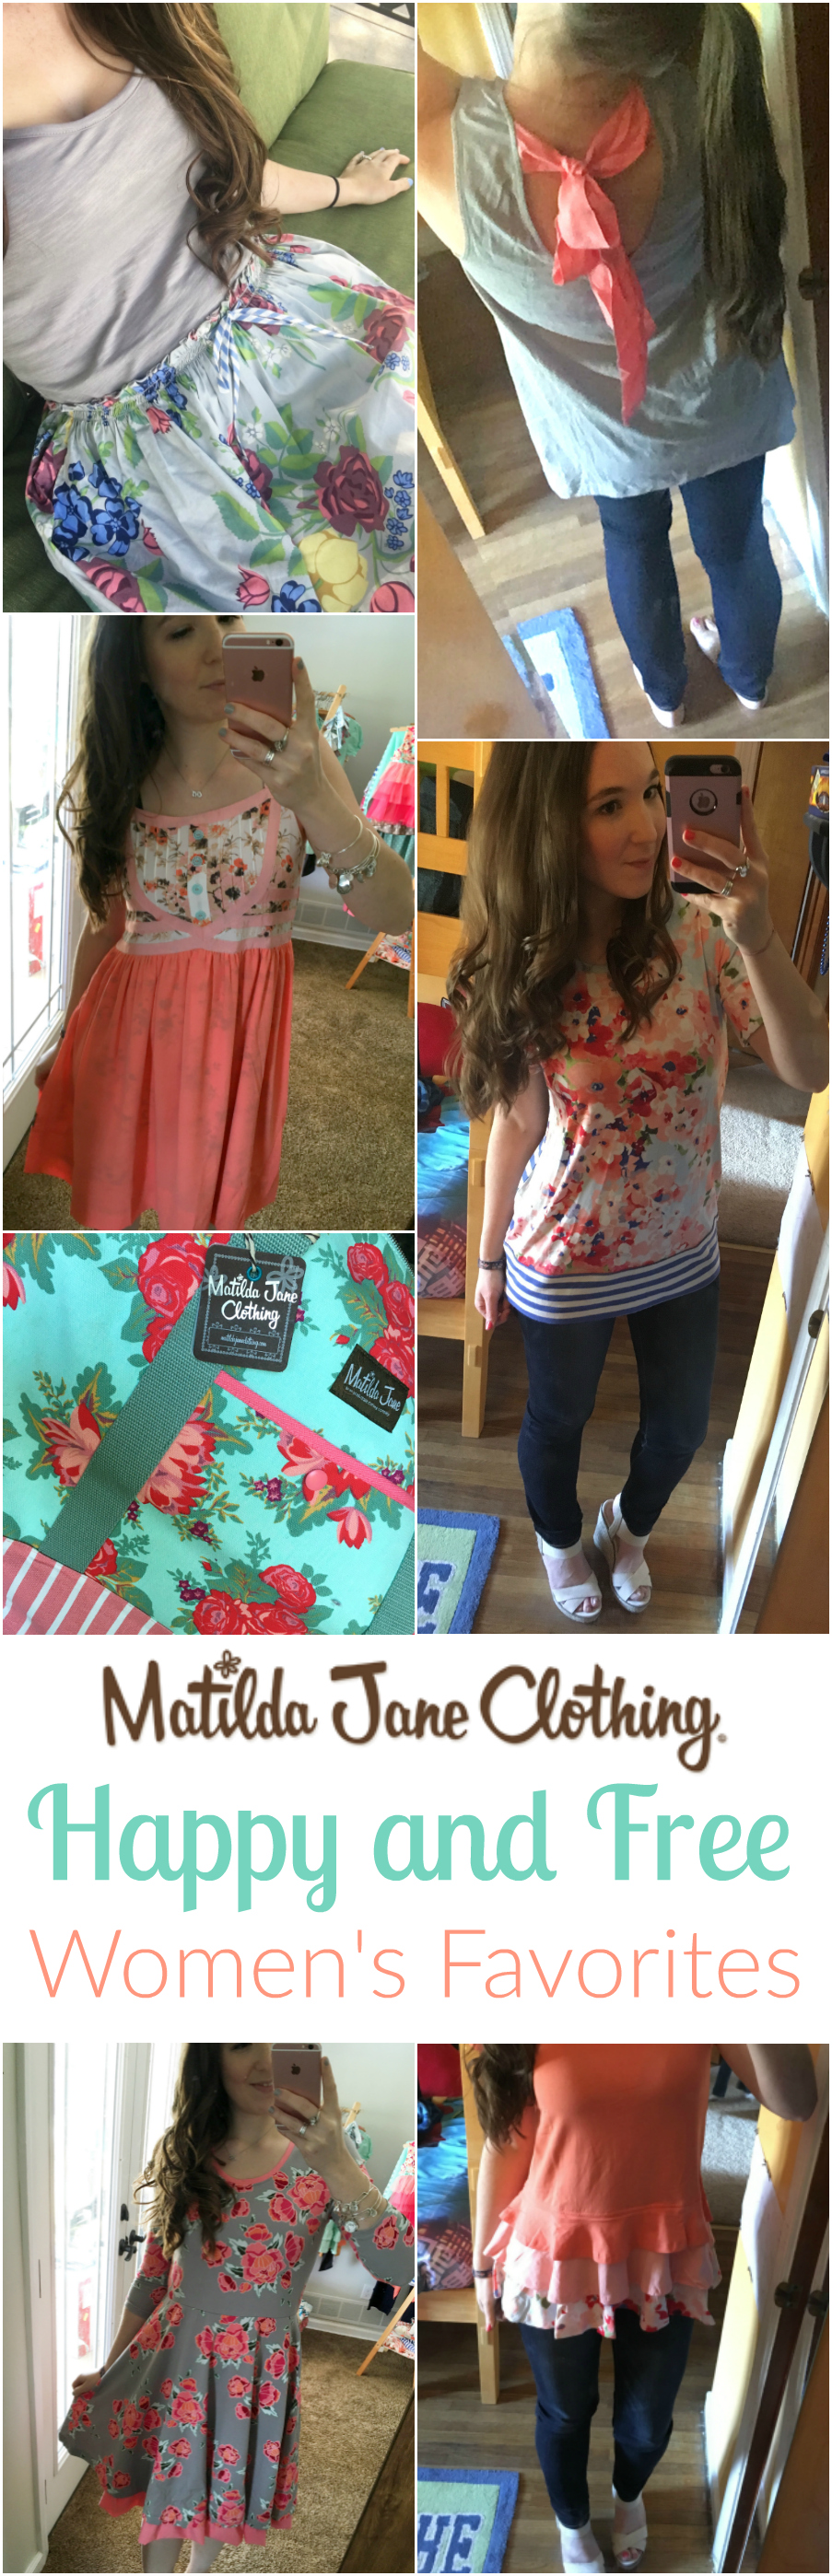 Matilda Jane Clothing Happy and Free Women's Favorites